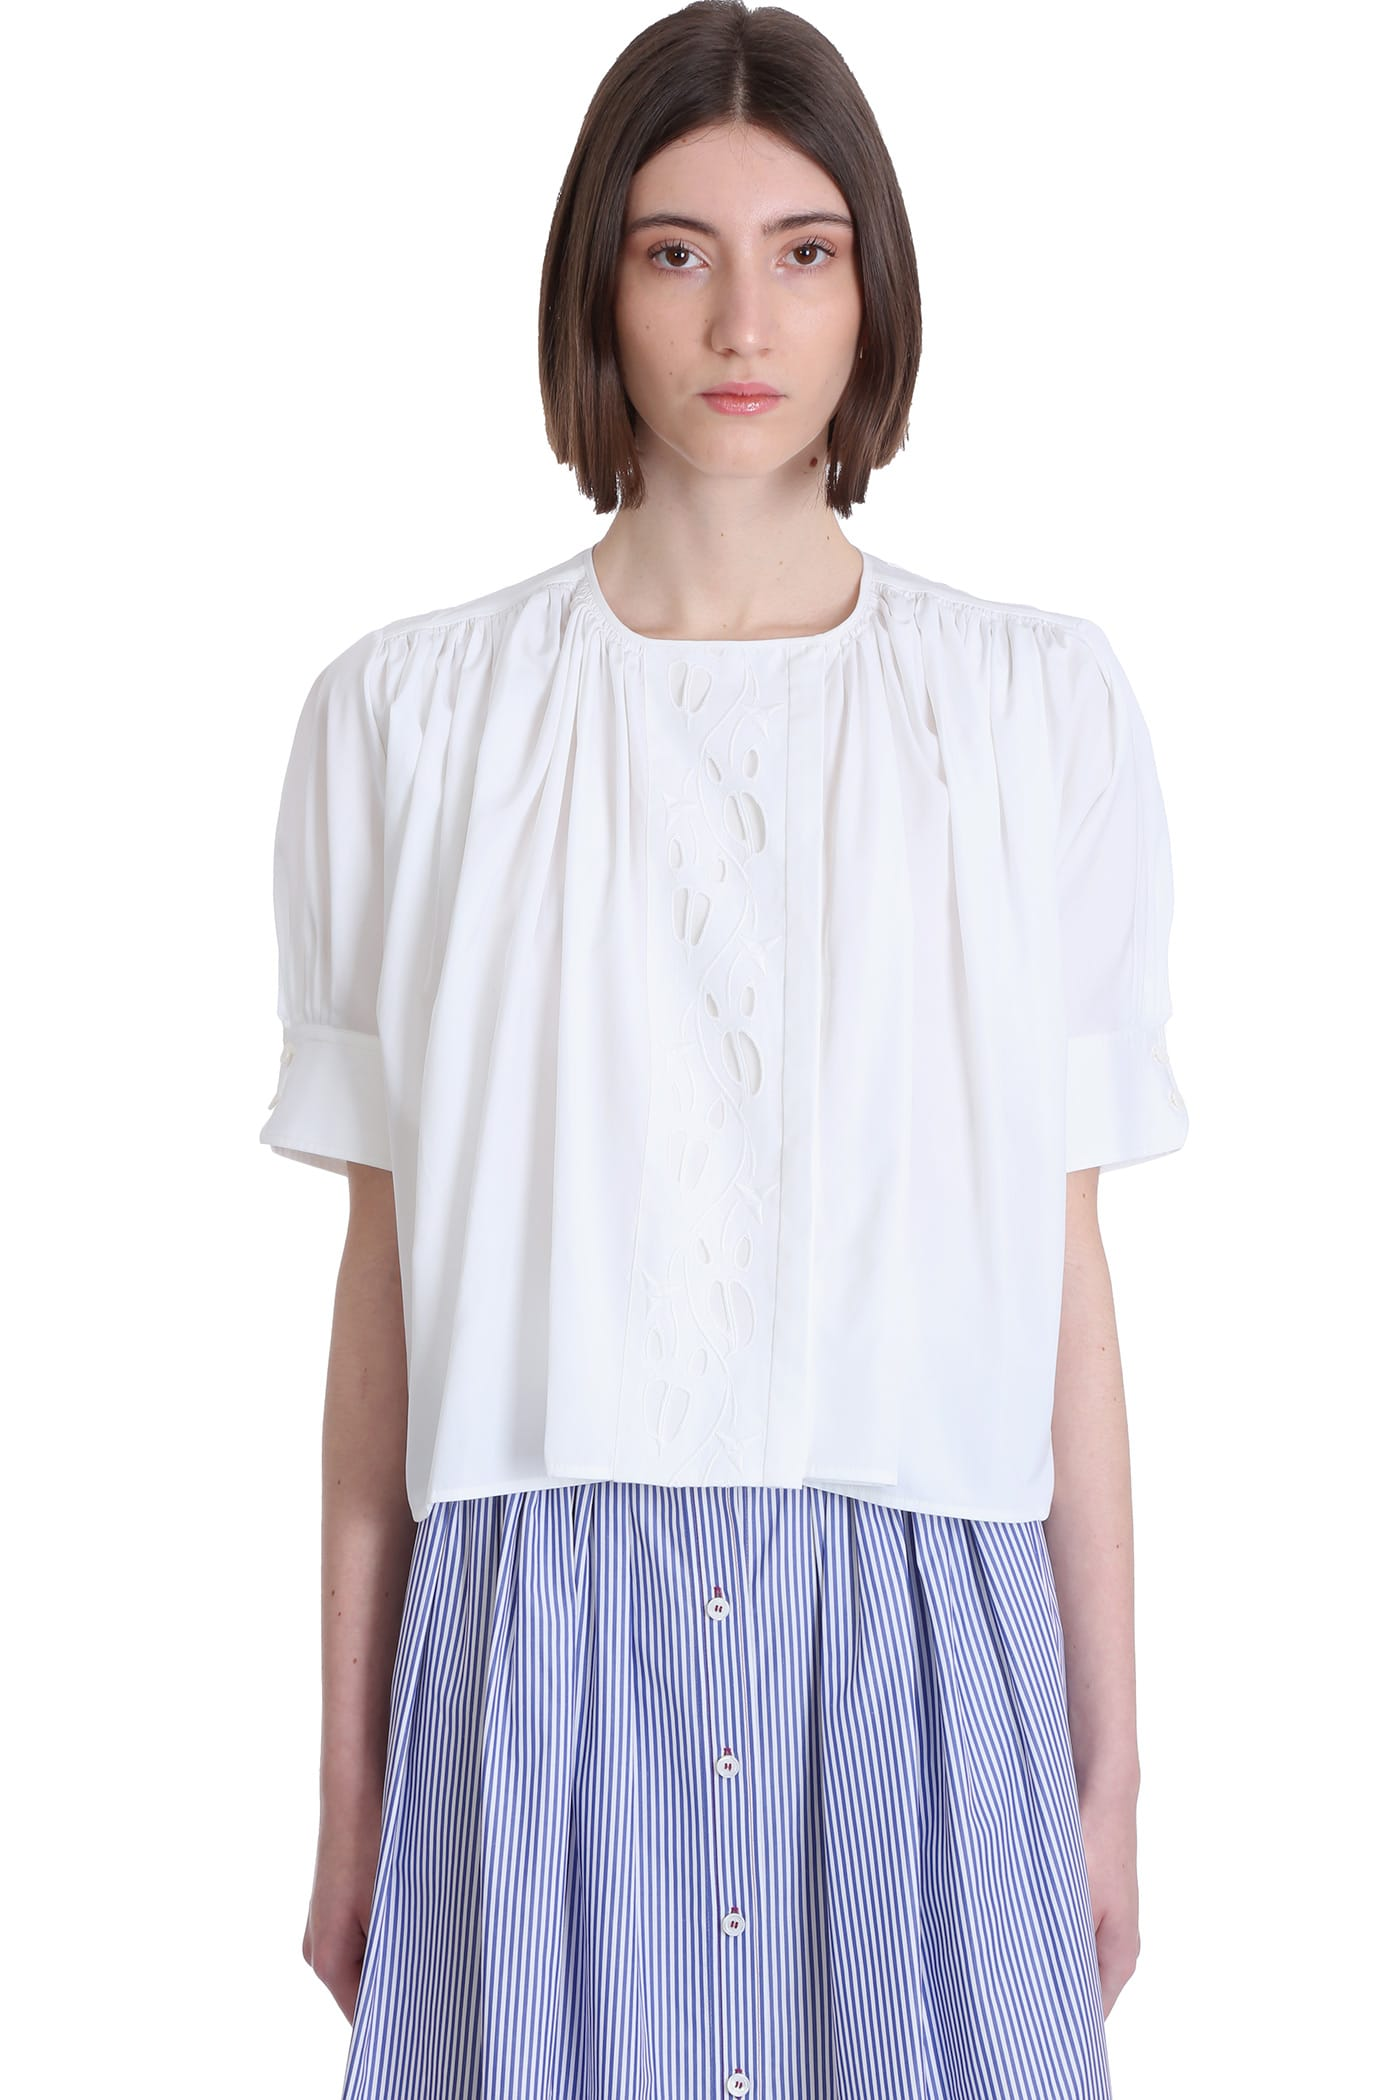 Chloé Cottons BLOUSE IN WHITE COTTON